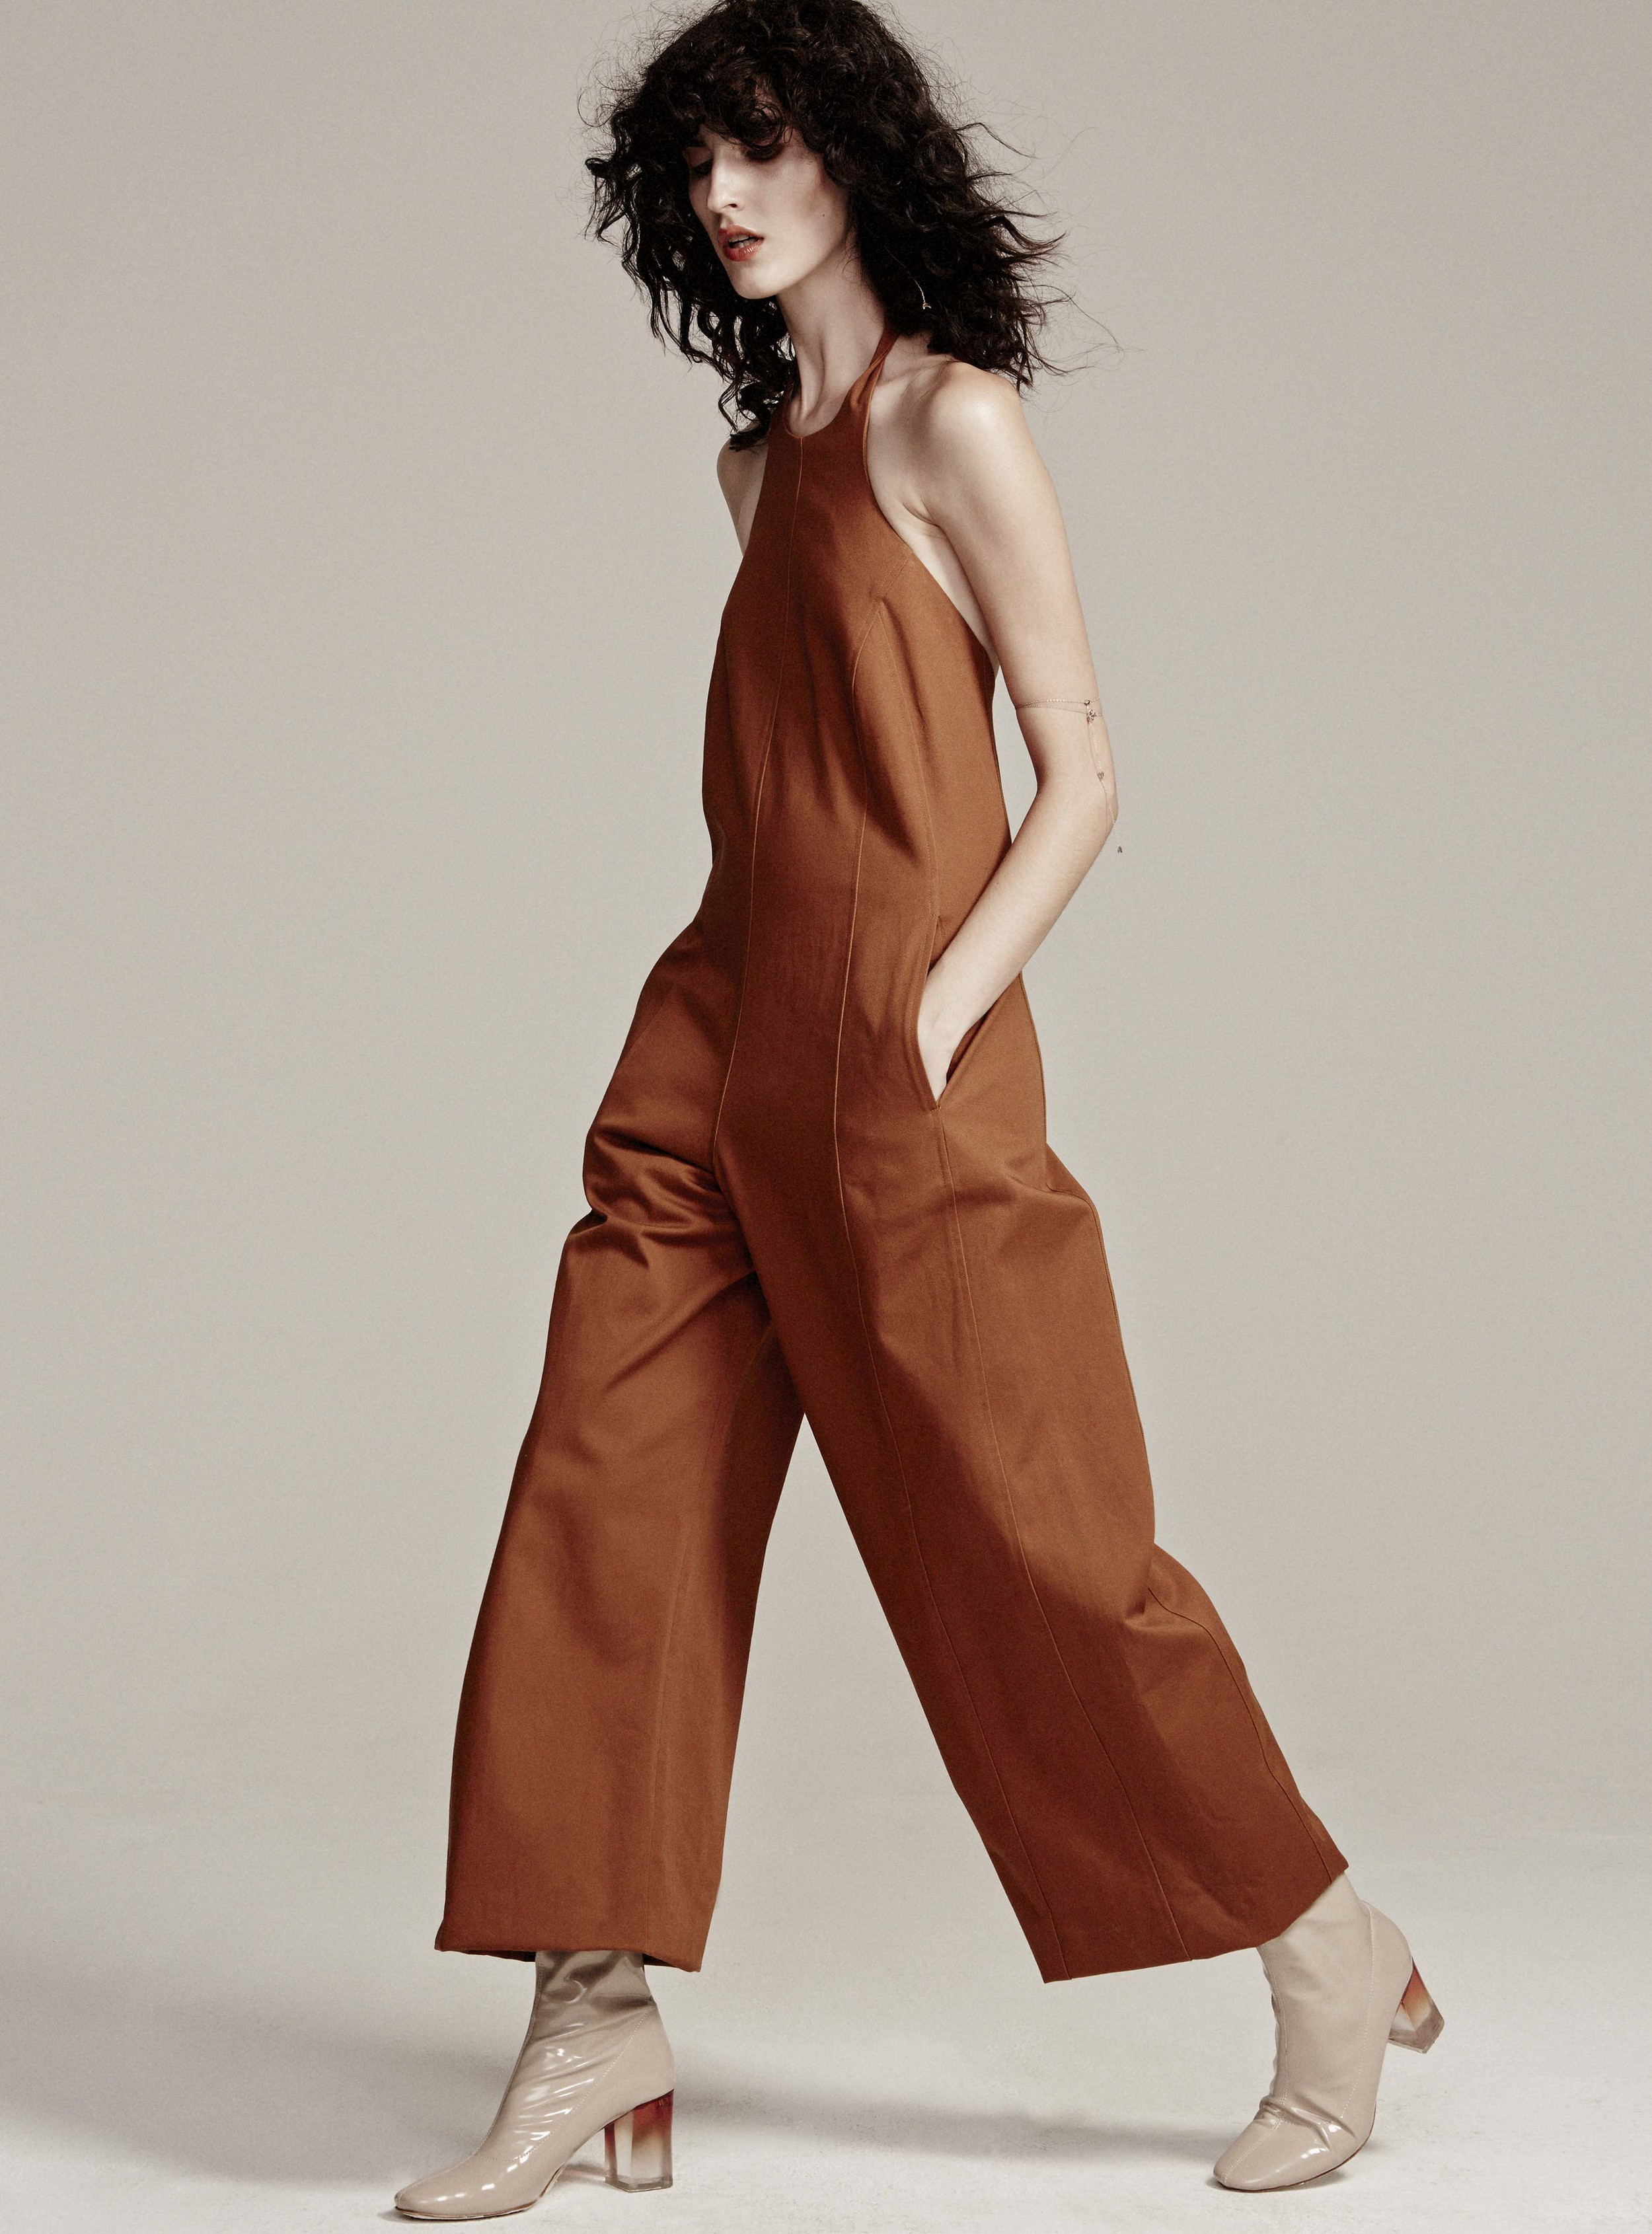 Jumpsuit by Maryam Nassir Zadeh, Earring ,  Rings and Necklace (worn around arm)  by Lorae Russo,  Stylist's own Boots